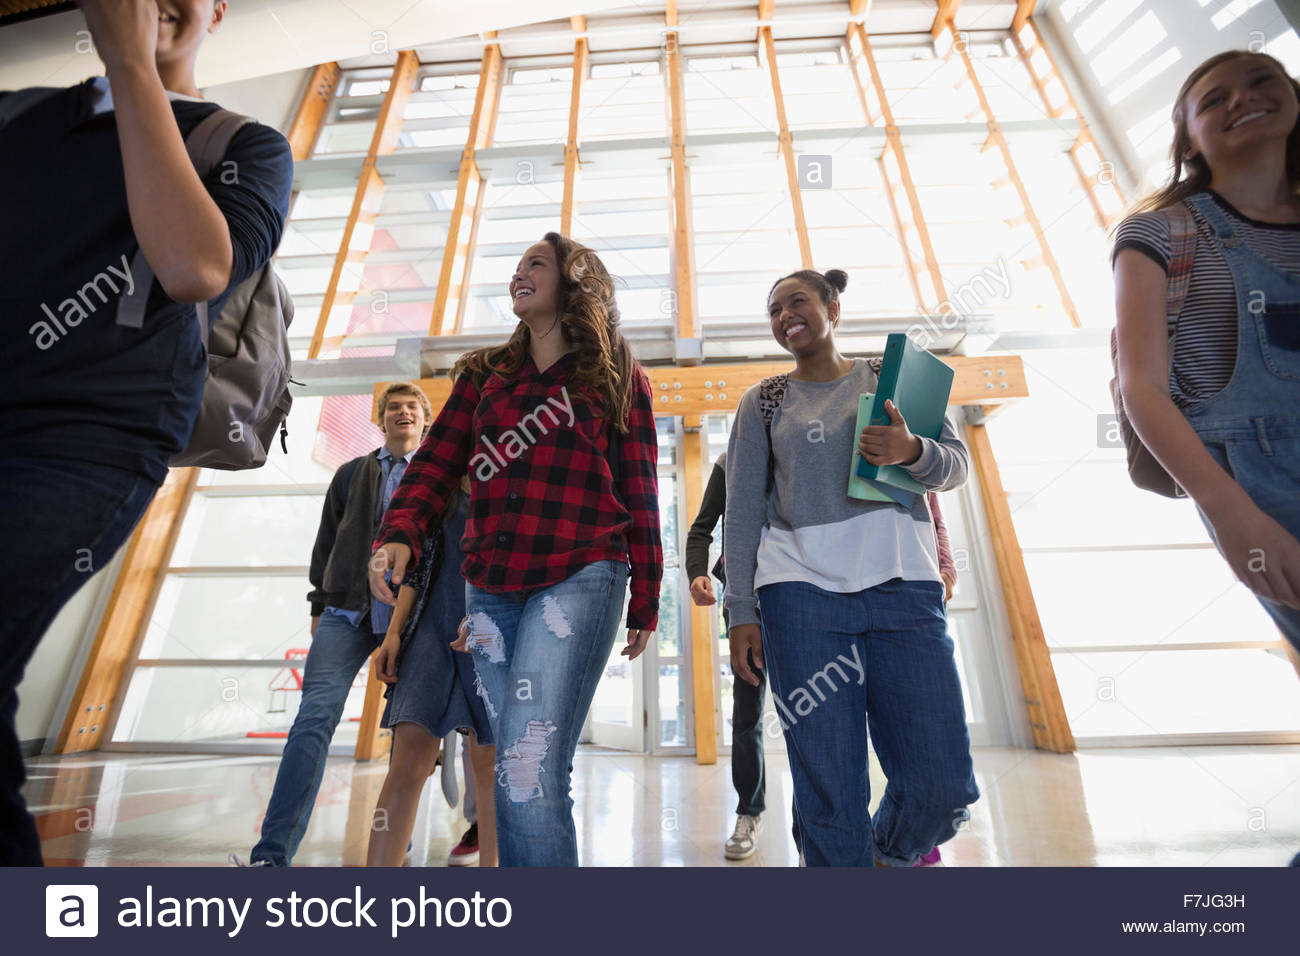 High school students arriving at school - Stock Image